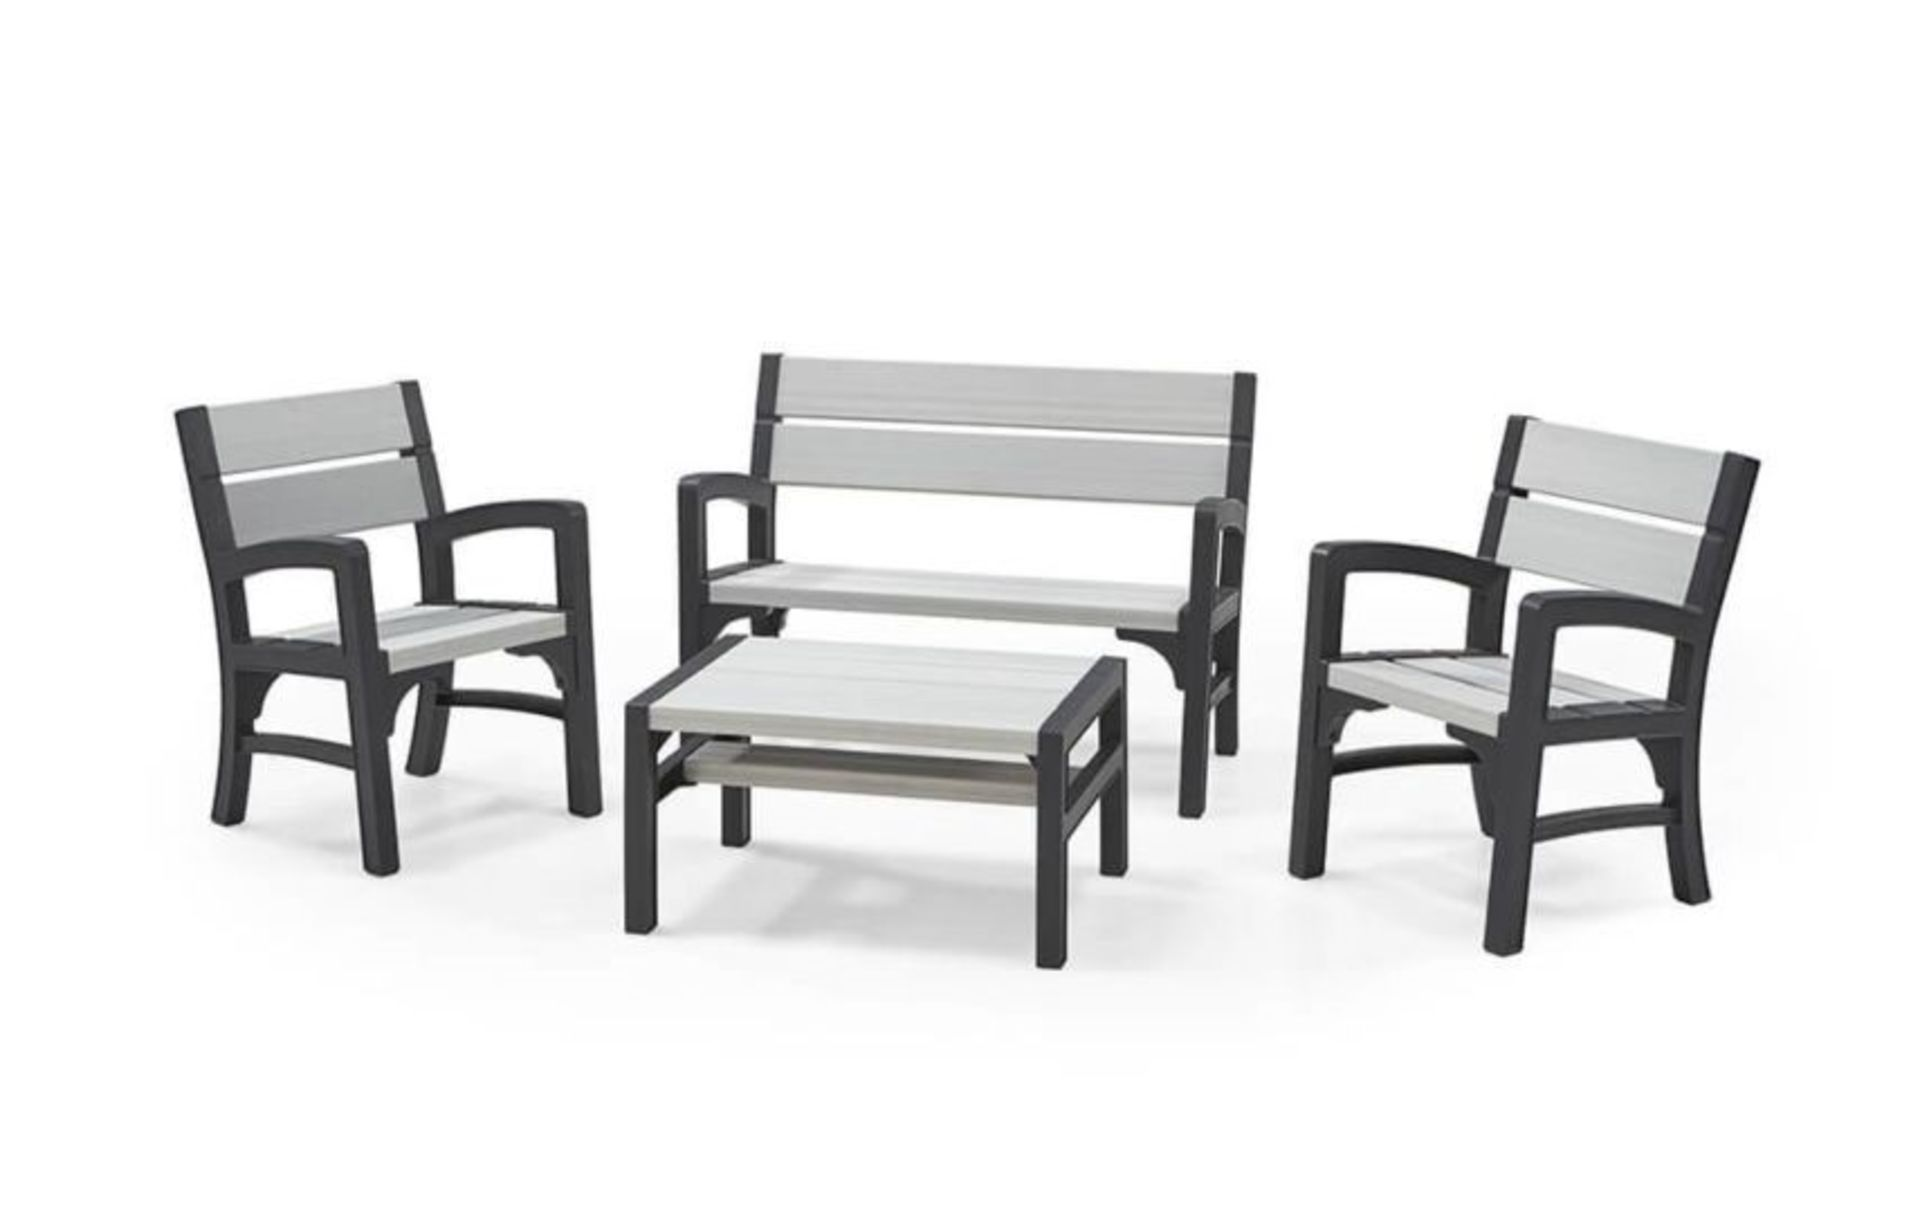 Lot 3 - Keter Rustic style 4 piece Lounge set, new and boxed, RRP £399.99